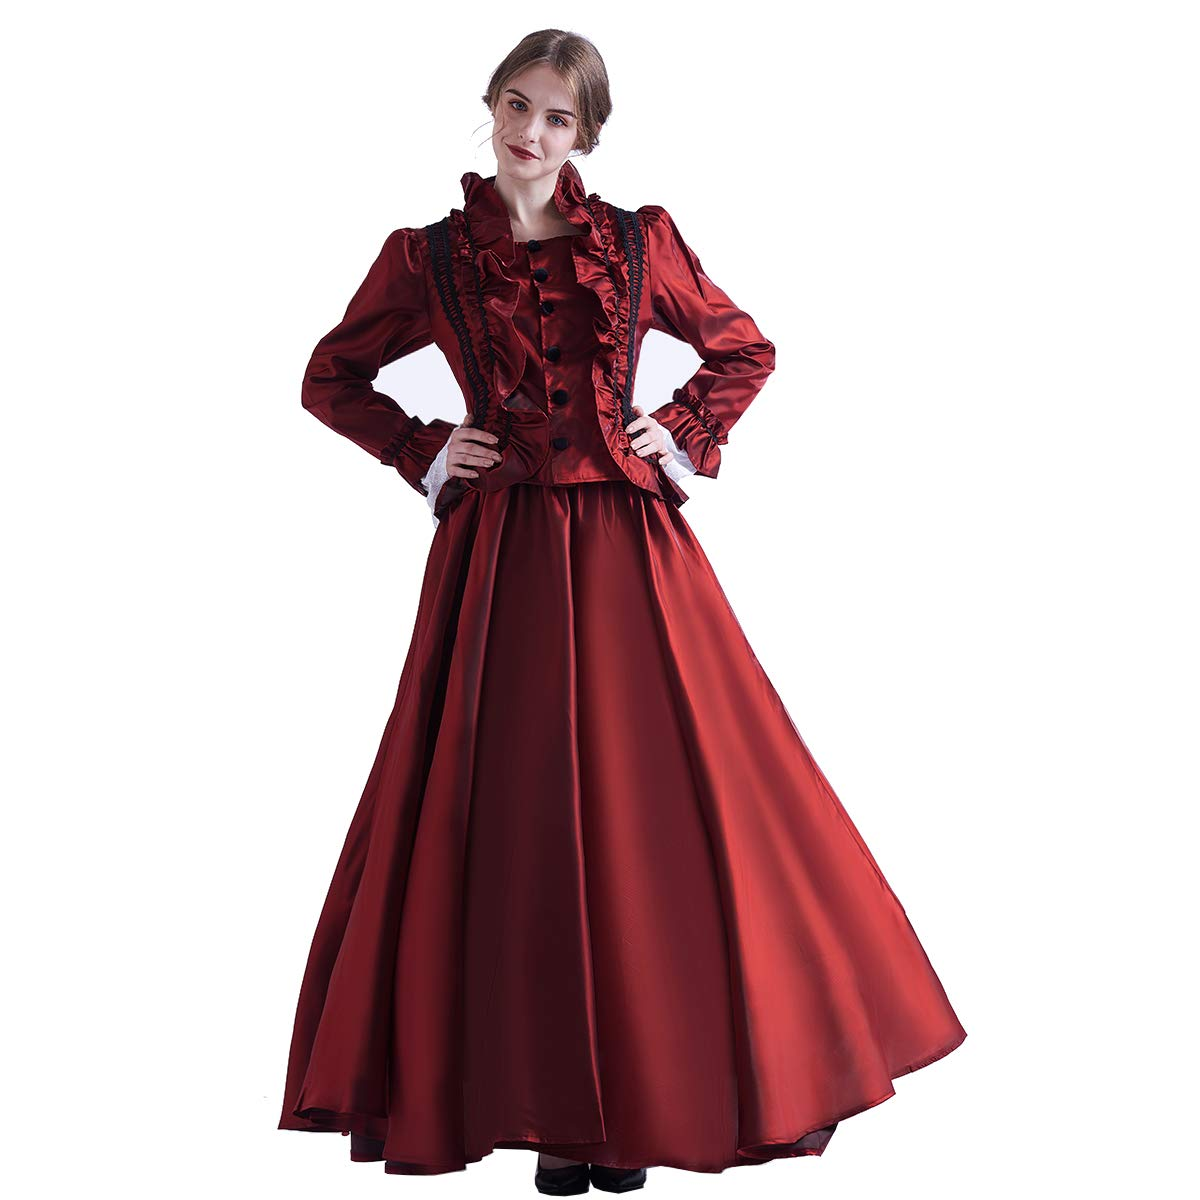 Victorian Costumes: Dresses, Saloon Girls, Southern Belle, Witch GRACEART Victorian Costume Renaissance Dress for Women Ball Gown (Dress & Hoop Skirt) $68.99 AT vintagedancer.com